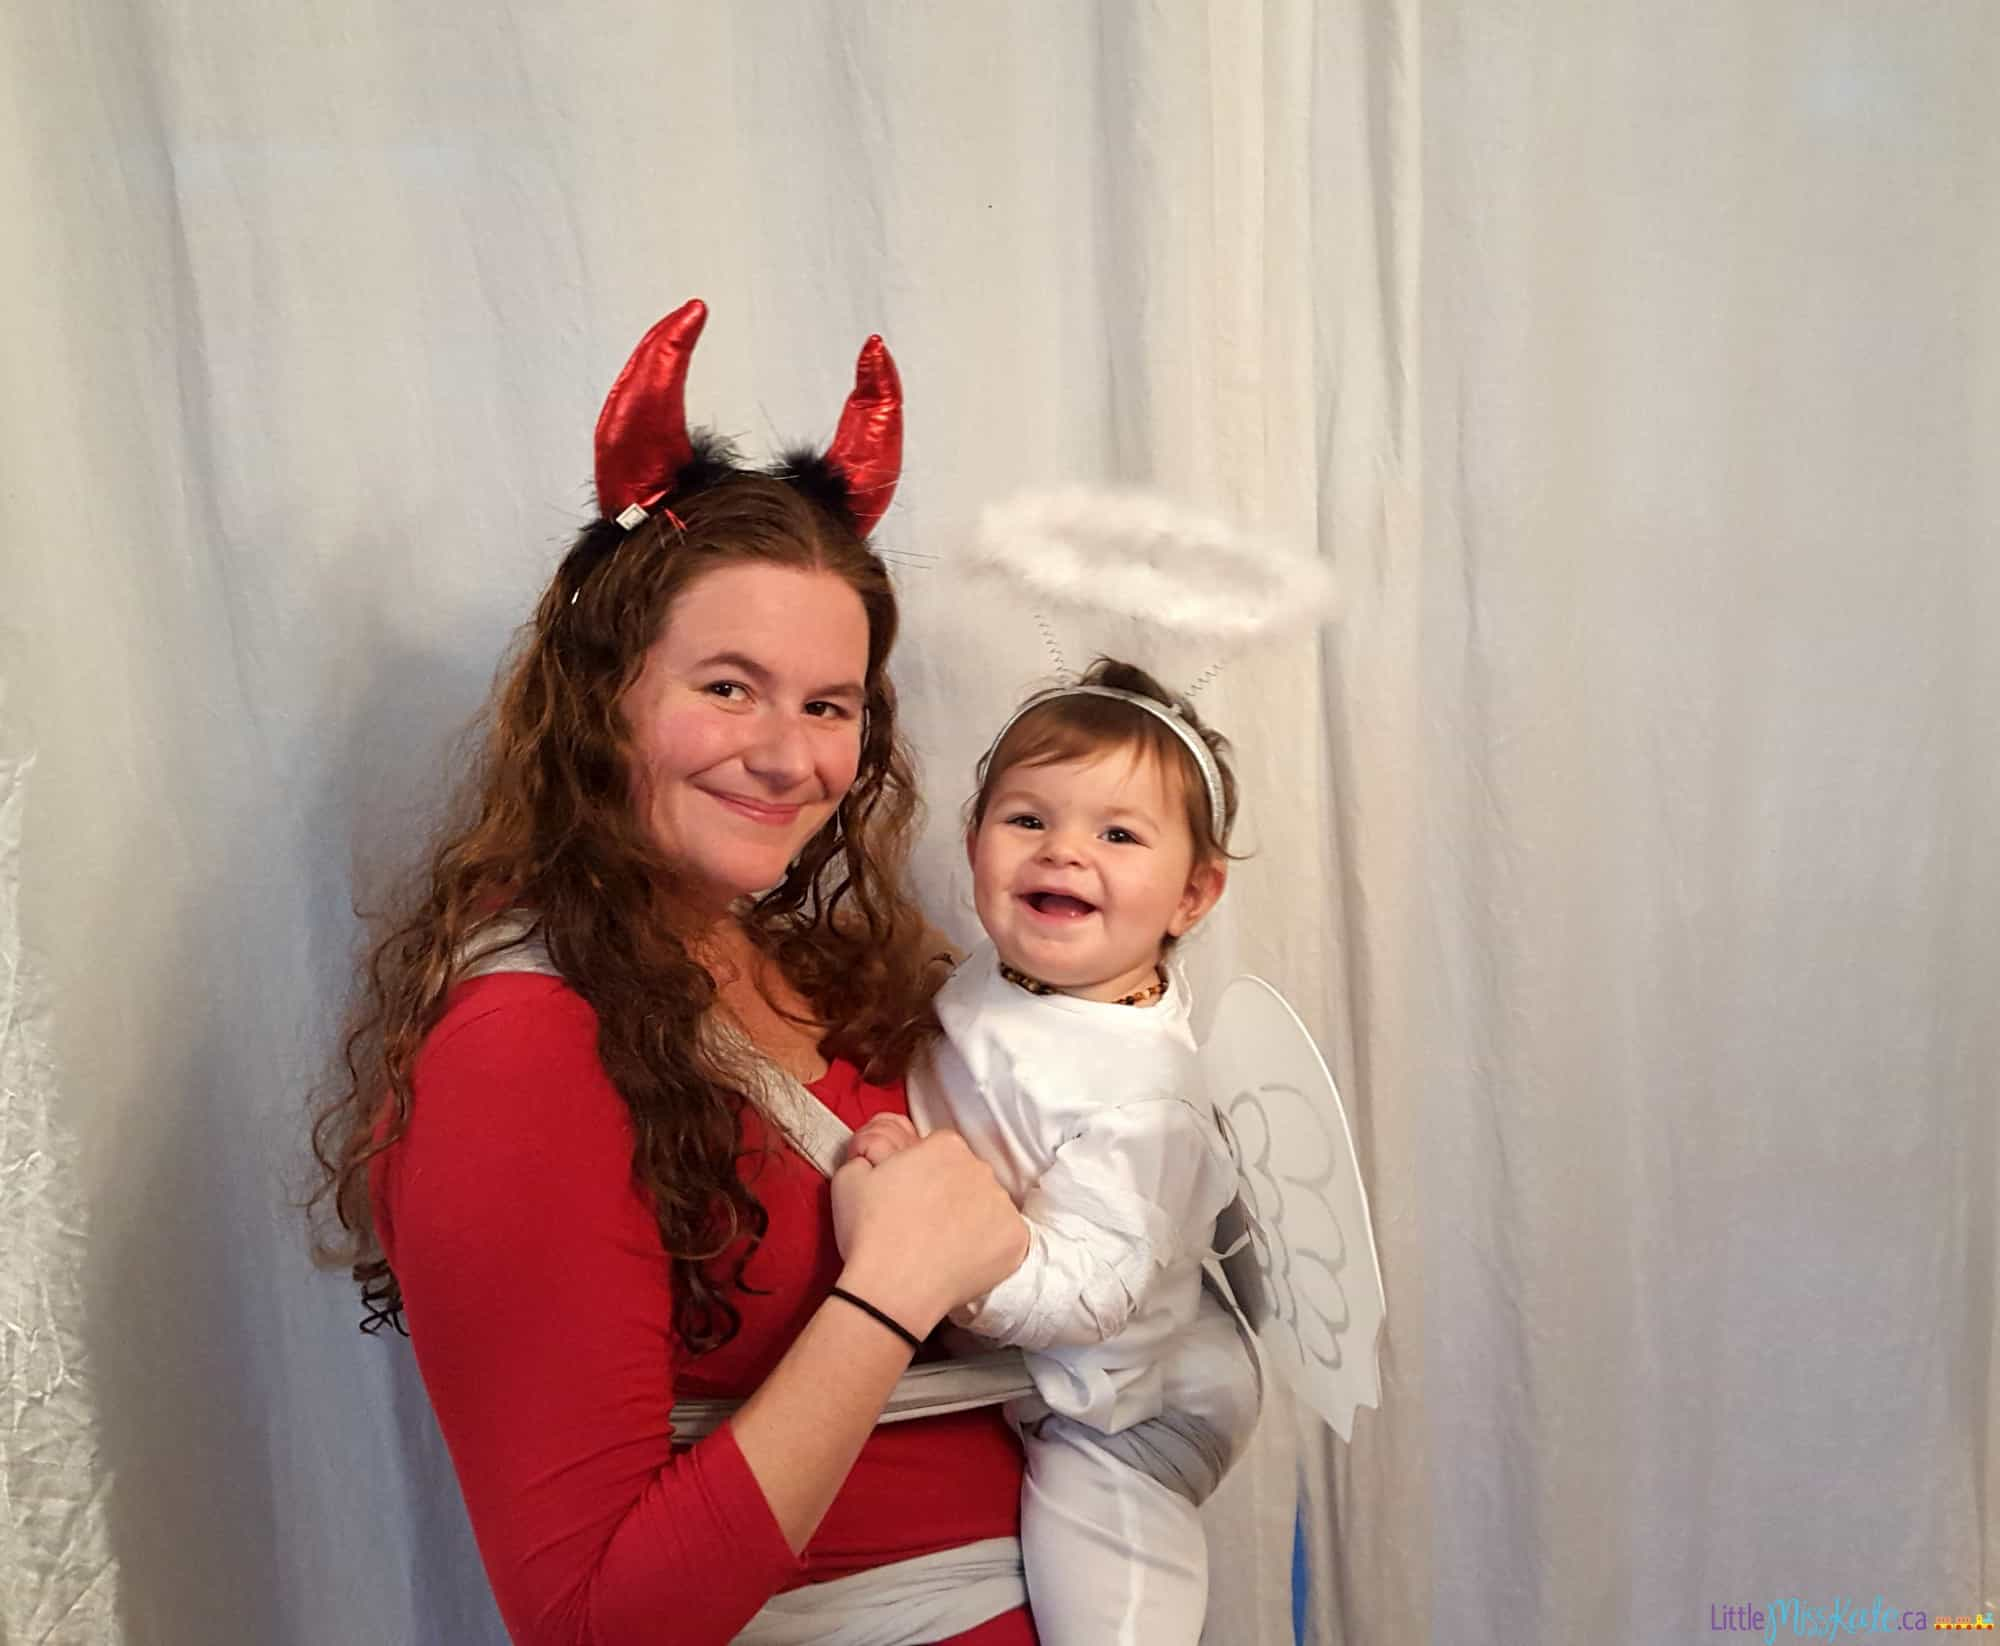 Mom and Baby Costume ideas - devil and angel